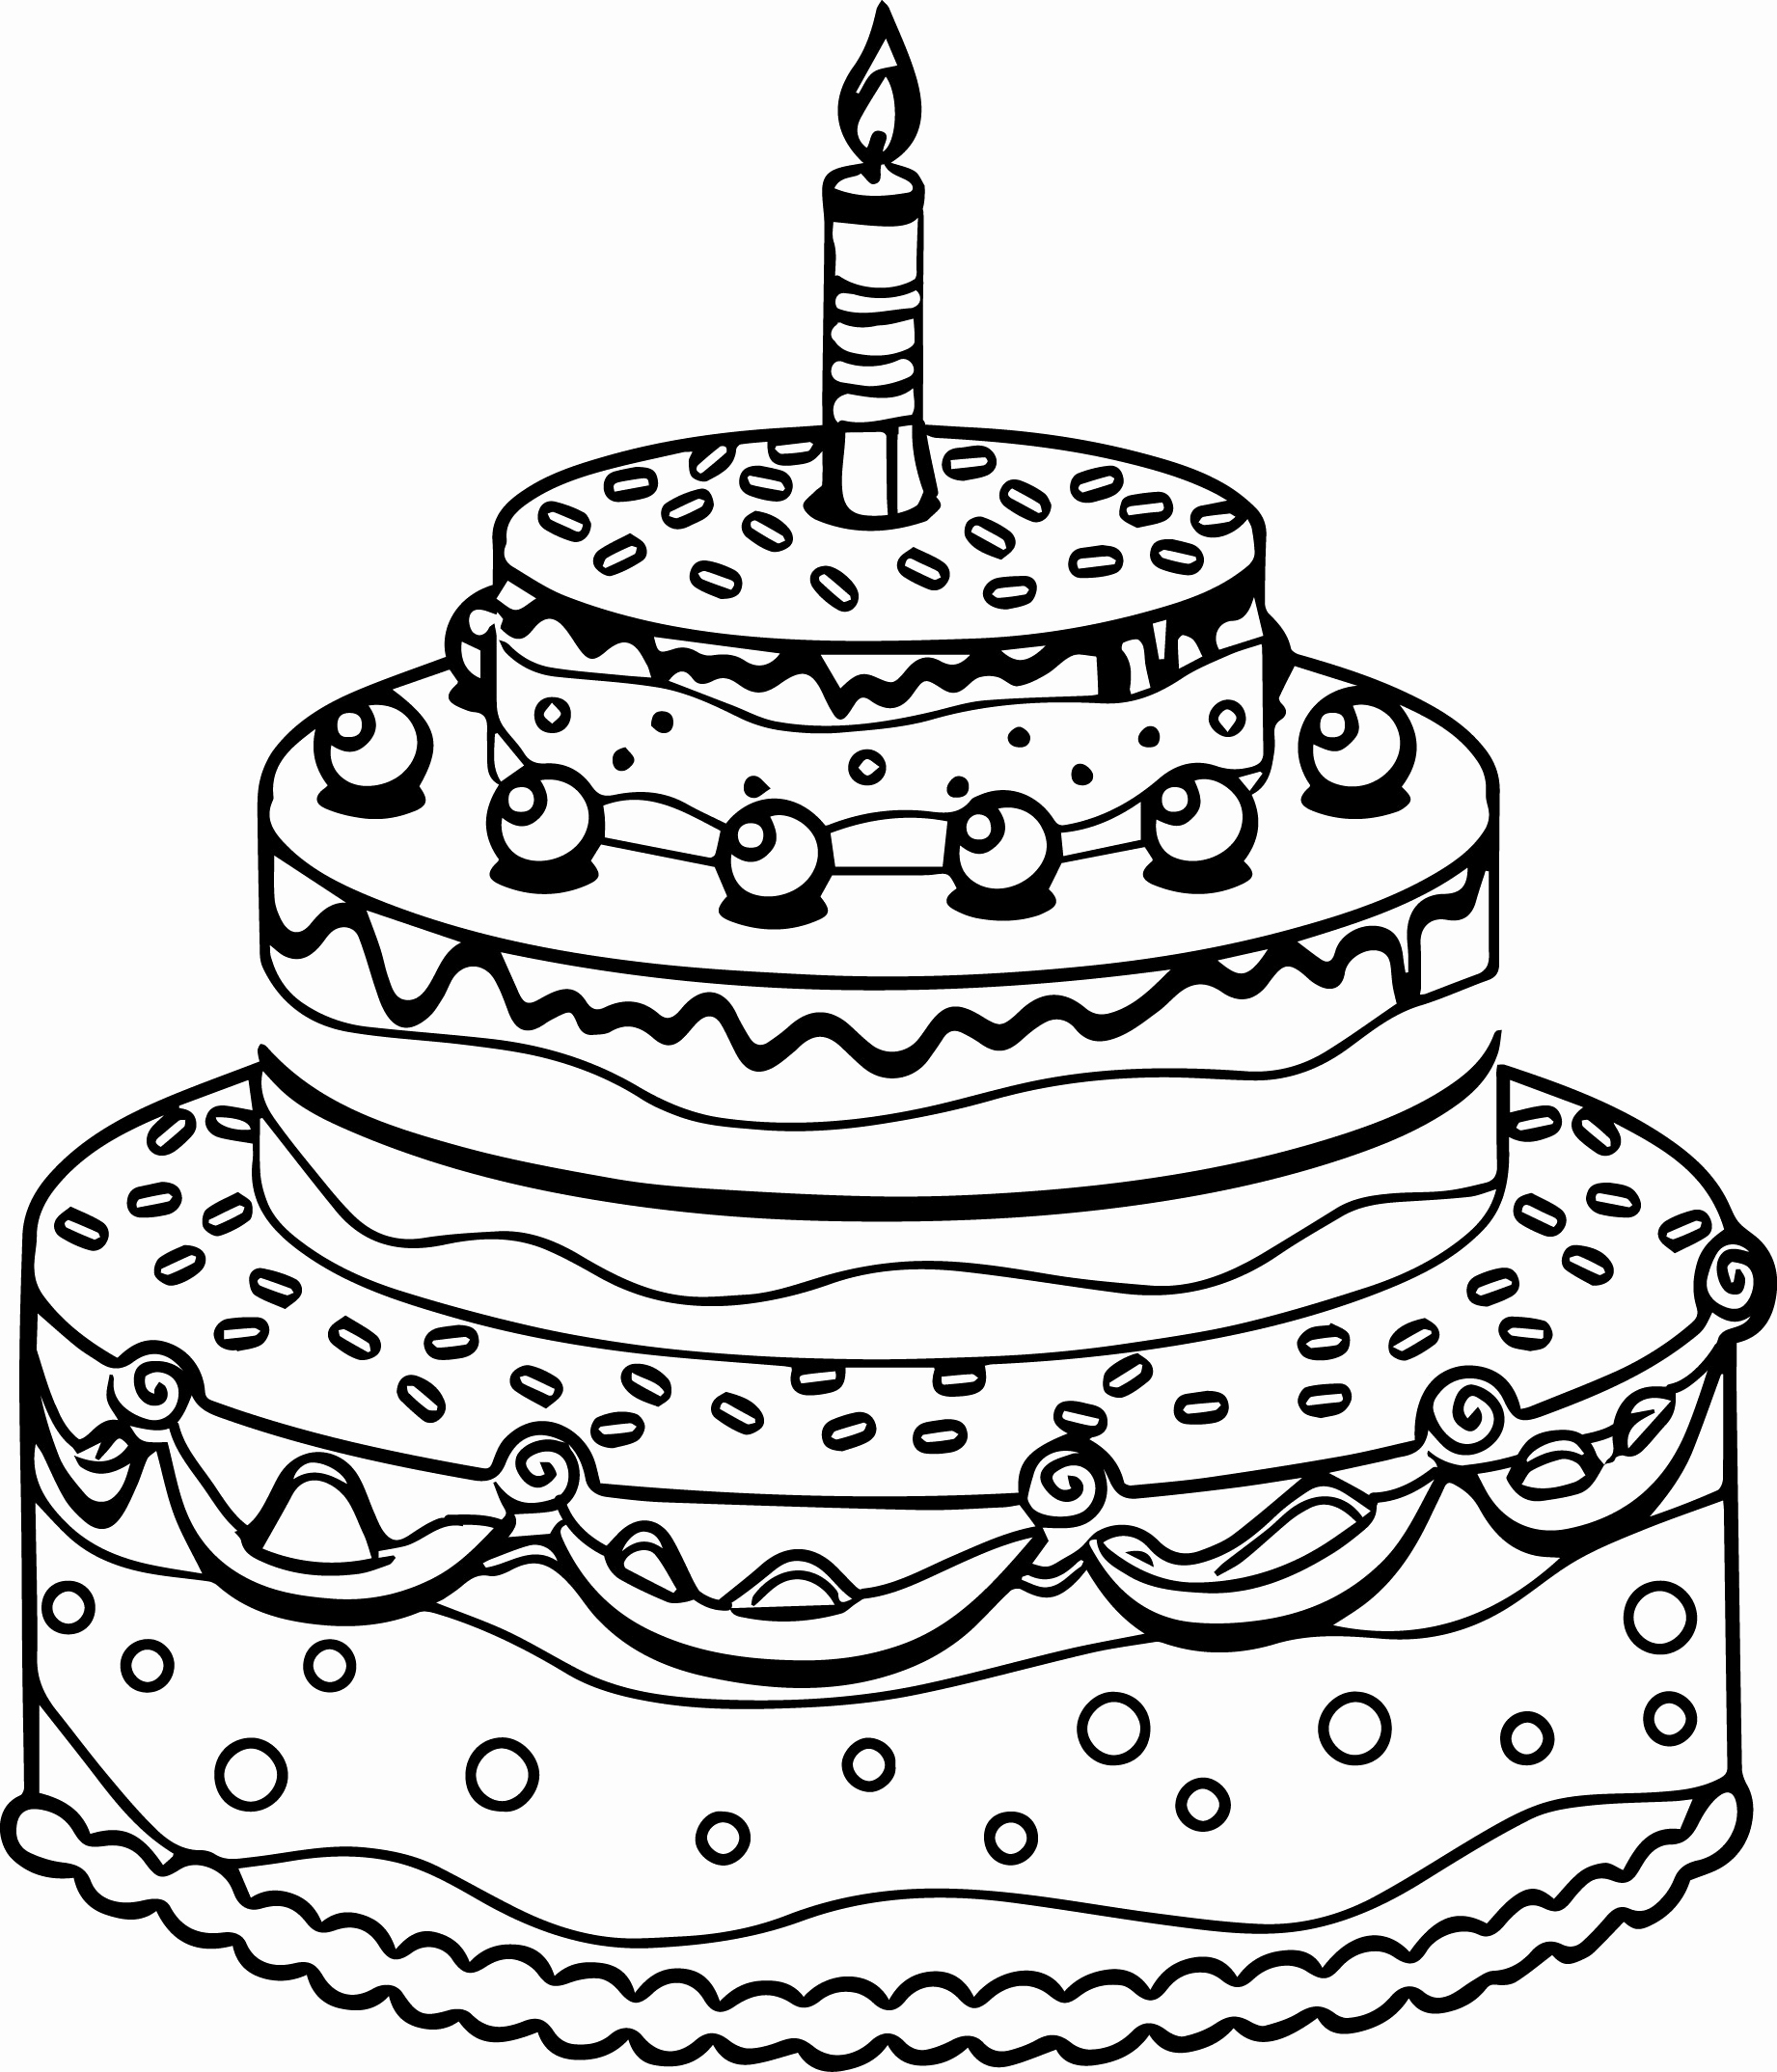 Birthday cake pictures to color free